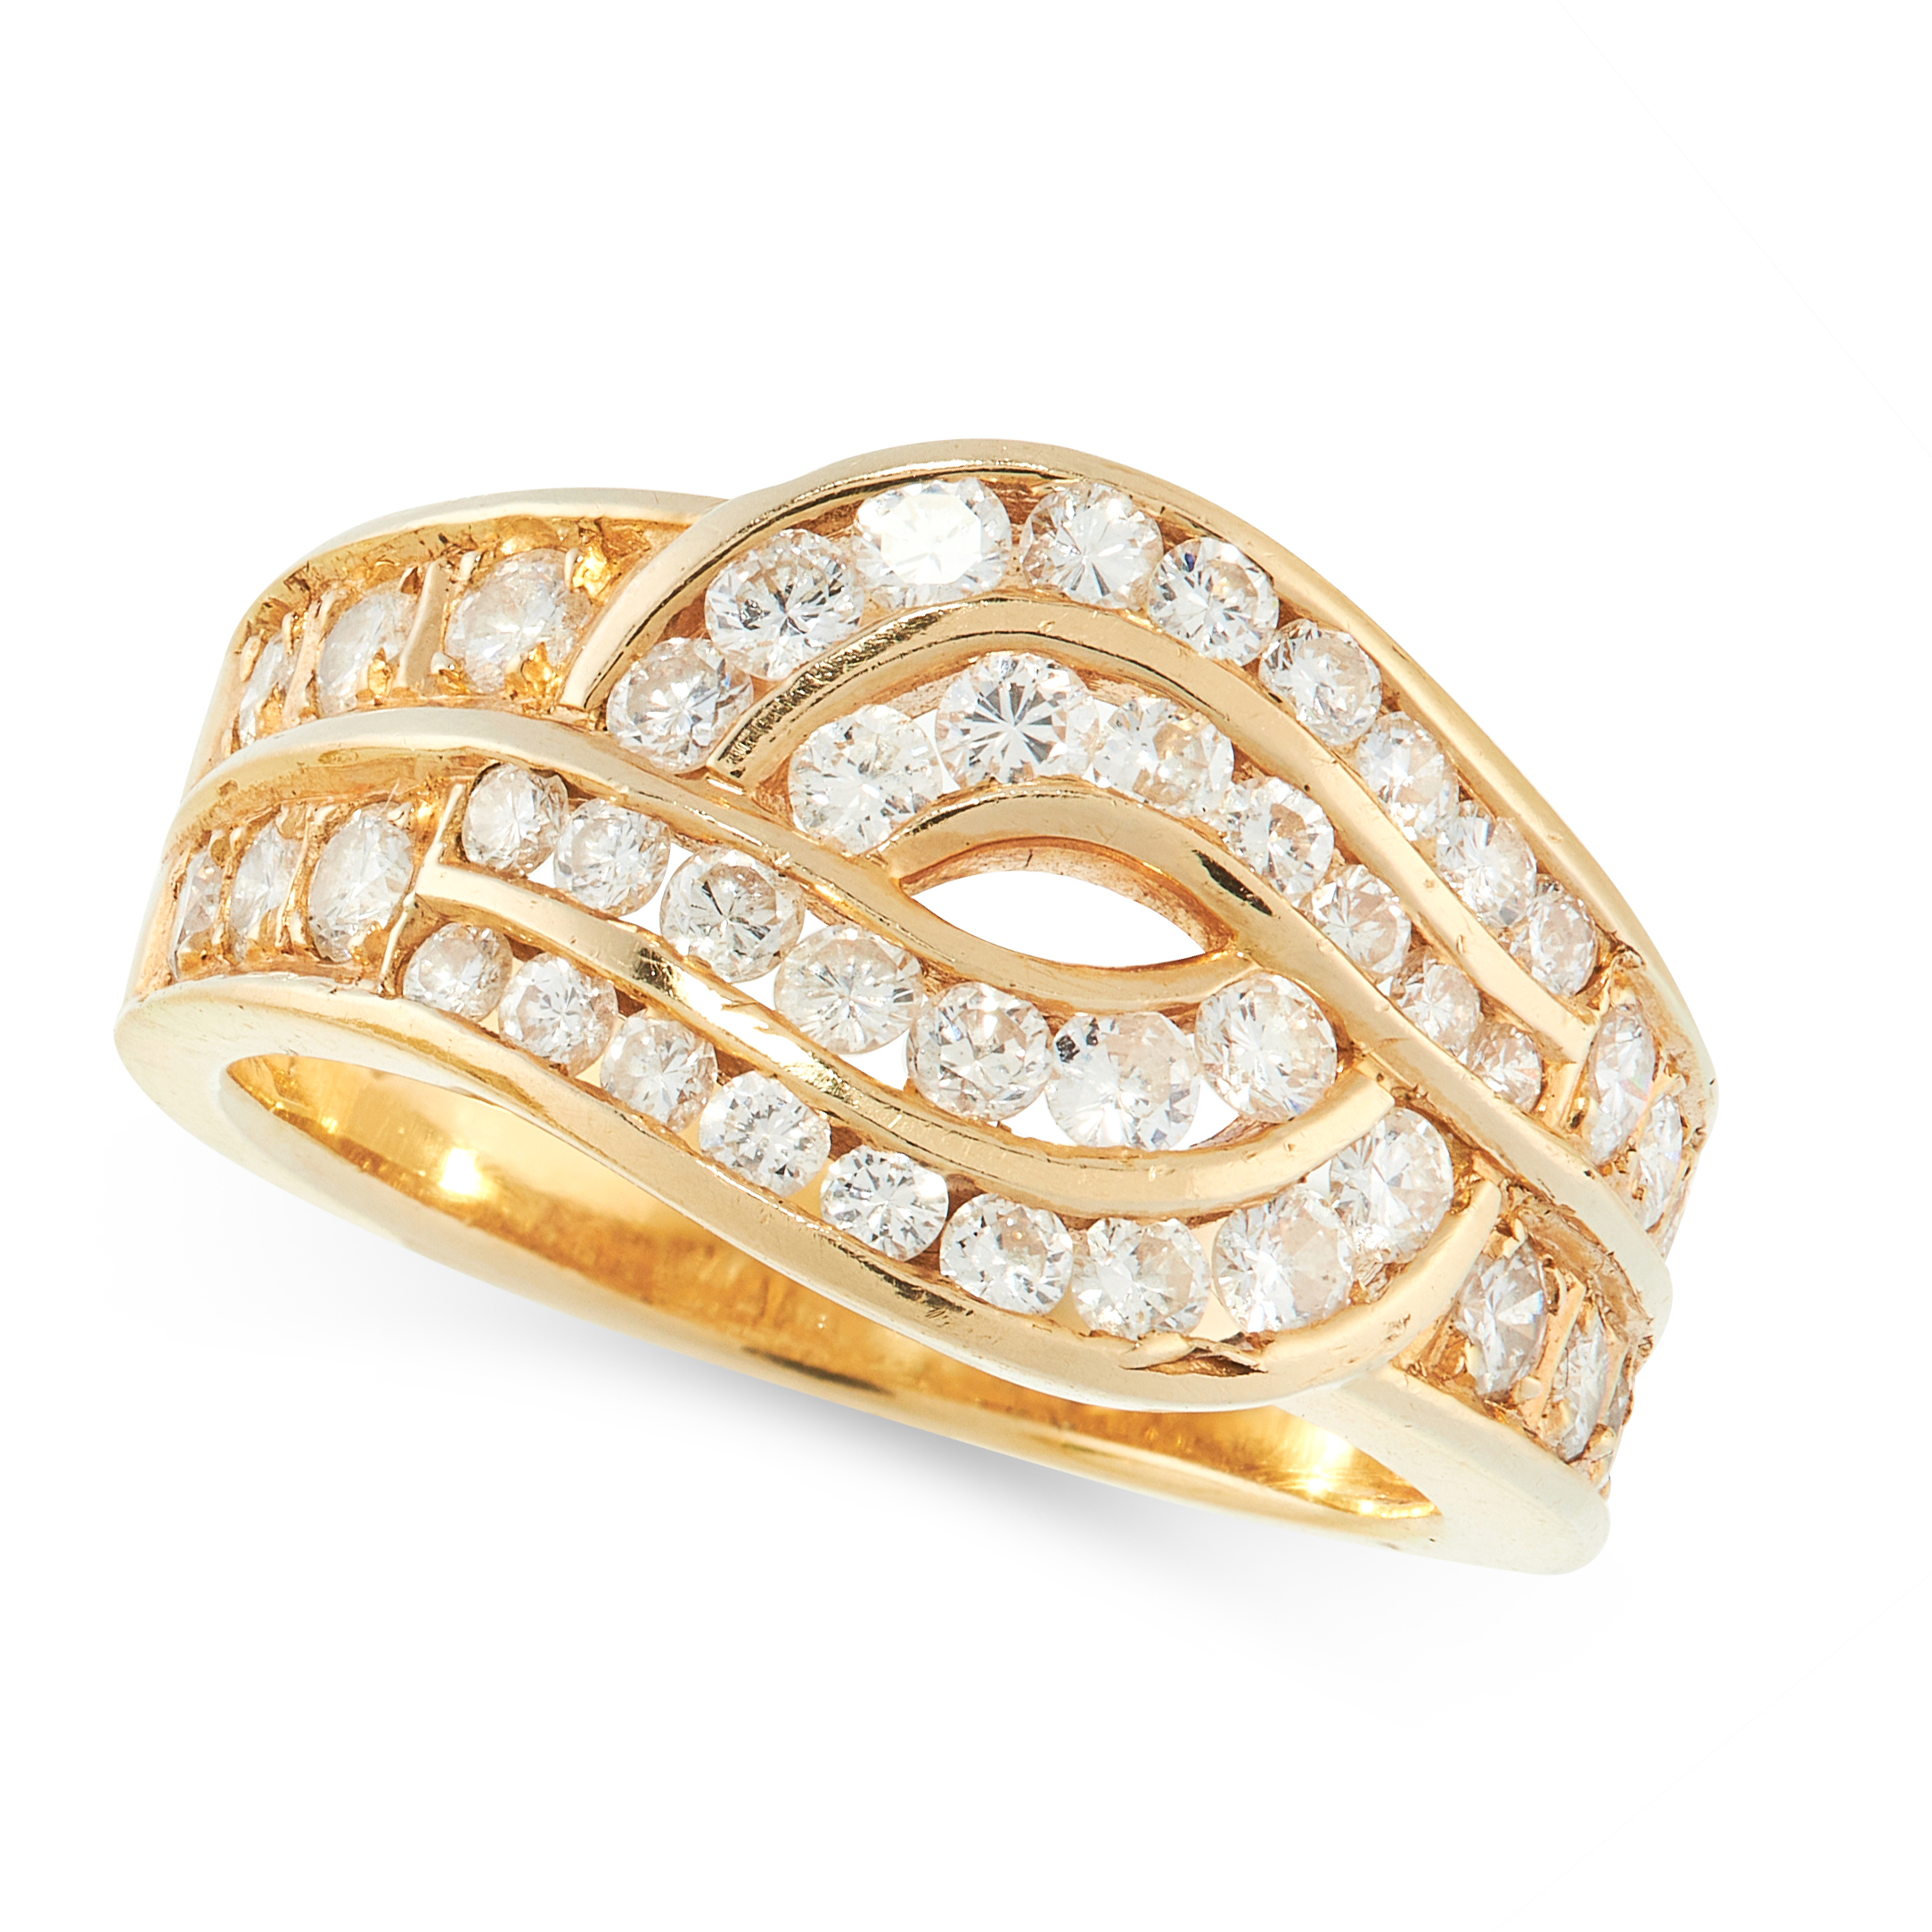 A DIAMOND DRESS RING in 18ct yellow gold, the knotted design set with rows of round cut diamonds all